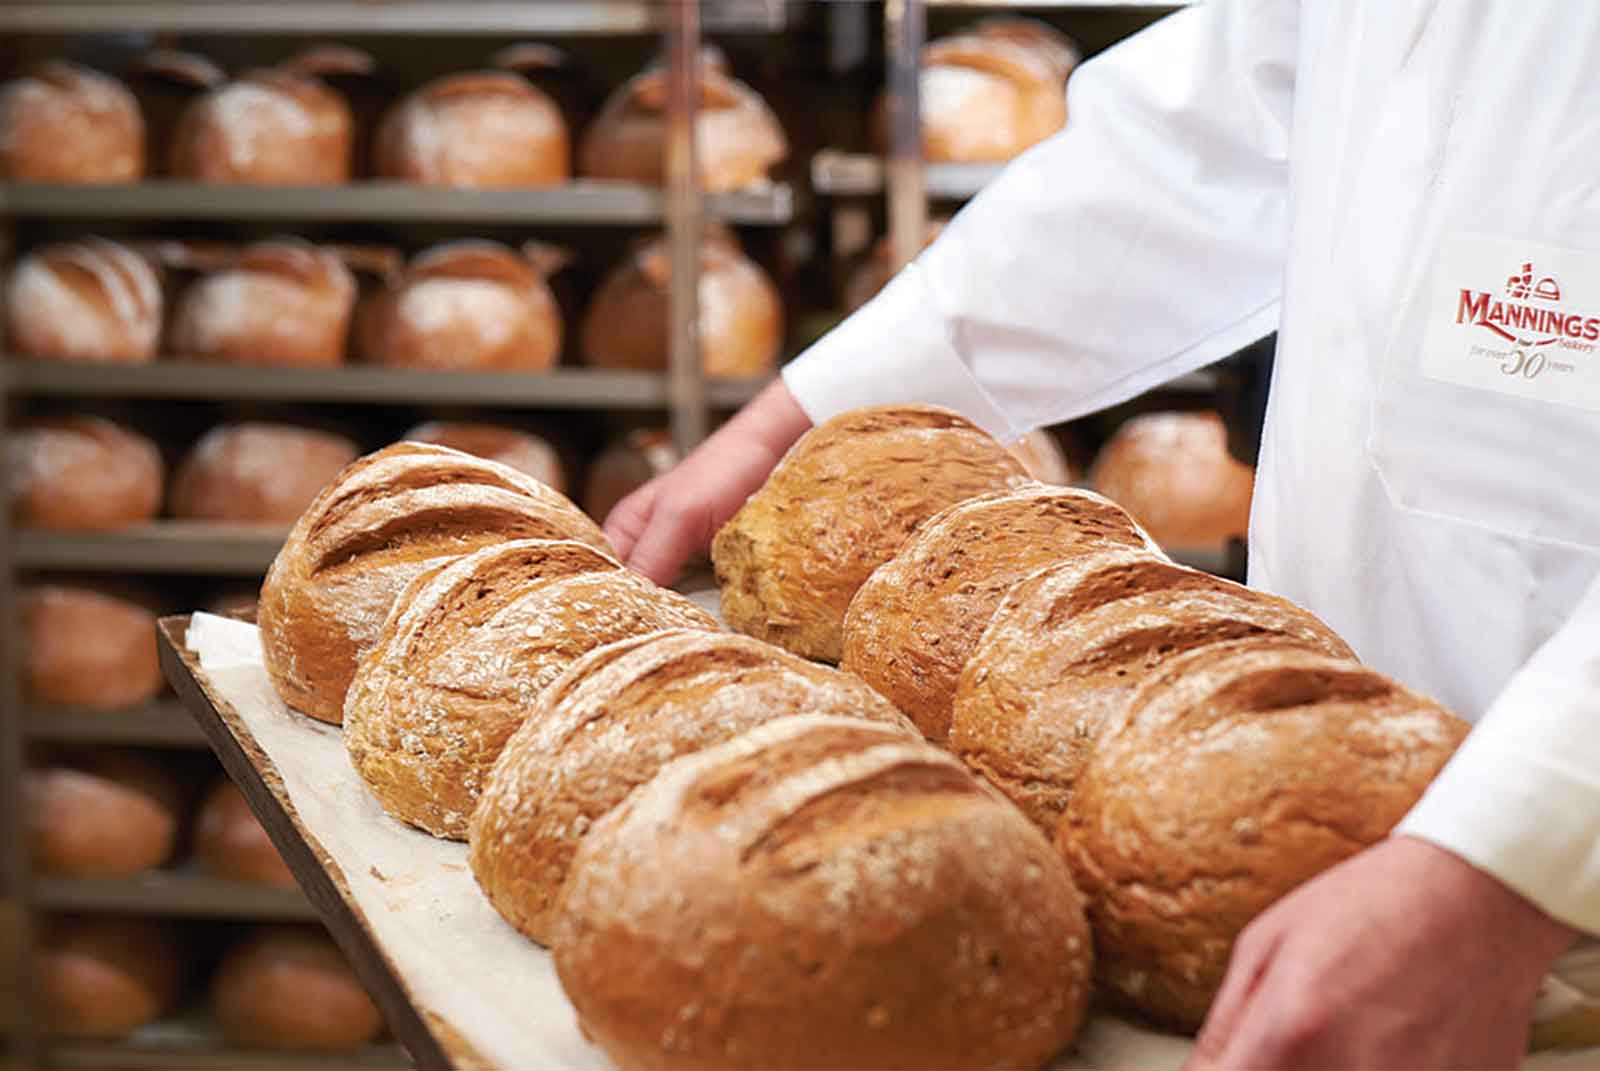 Mannings have a long tradition of craft baking in Dublin